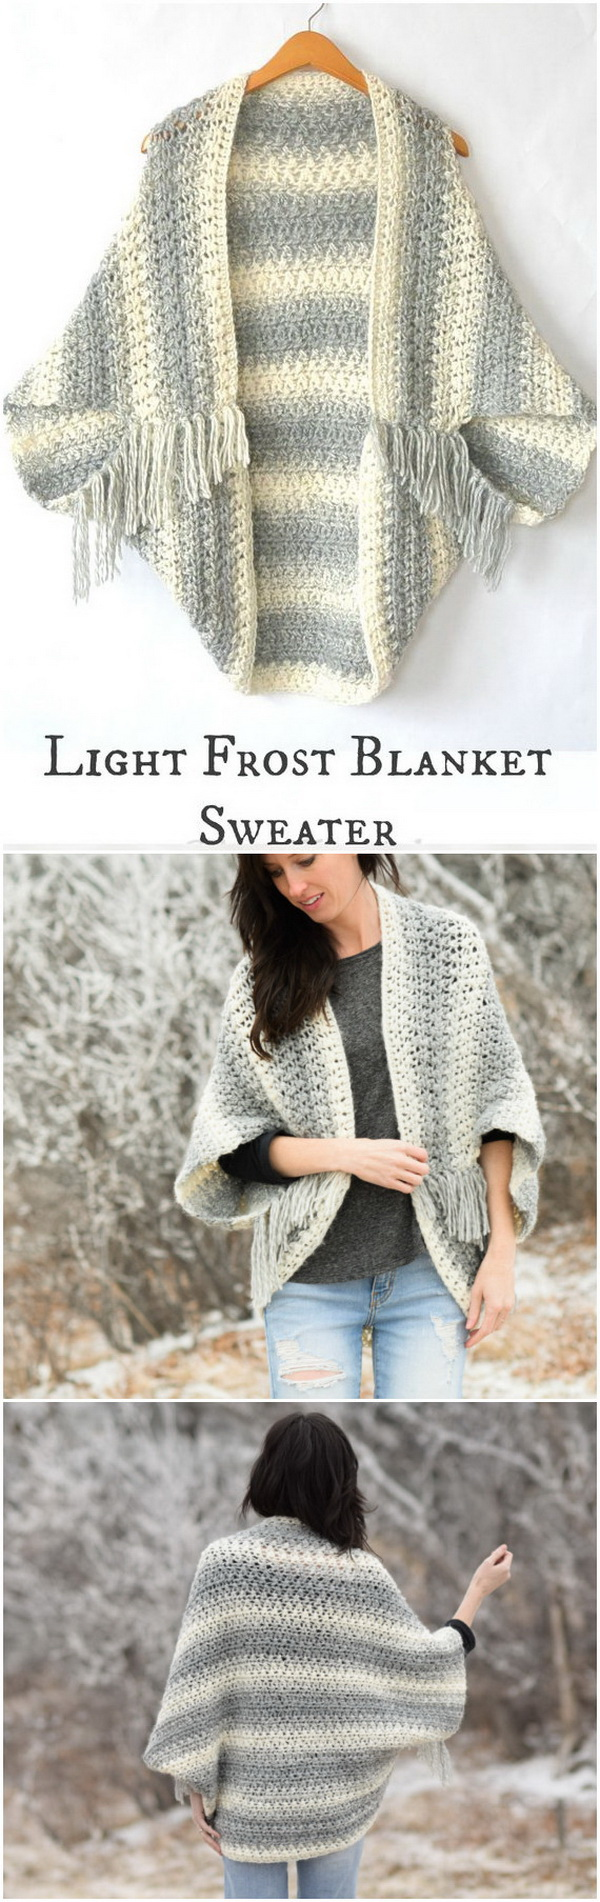 Light Frost Easy Crochet Blanket Sweater. Soft yarn, warm and comfortable! This new Light Frost Blanket Sweater pattern is not difficult to make. It uses a simple crochet stitch combination.